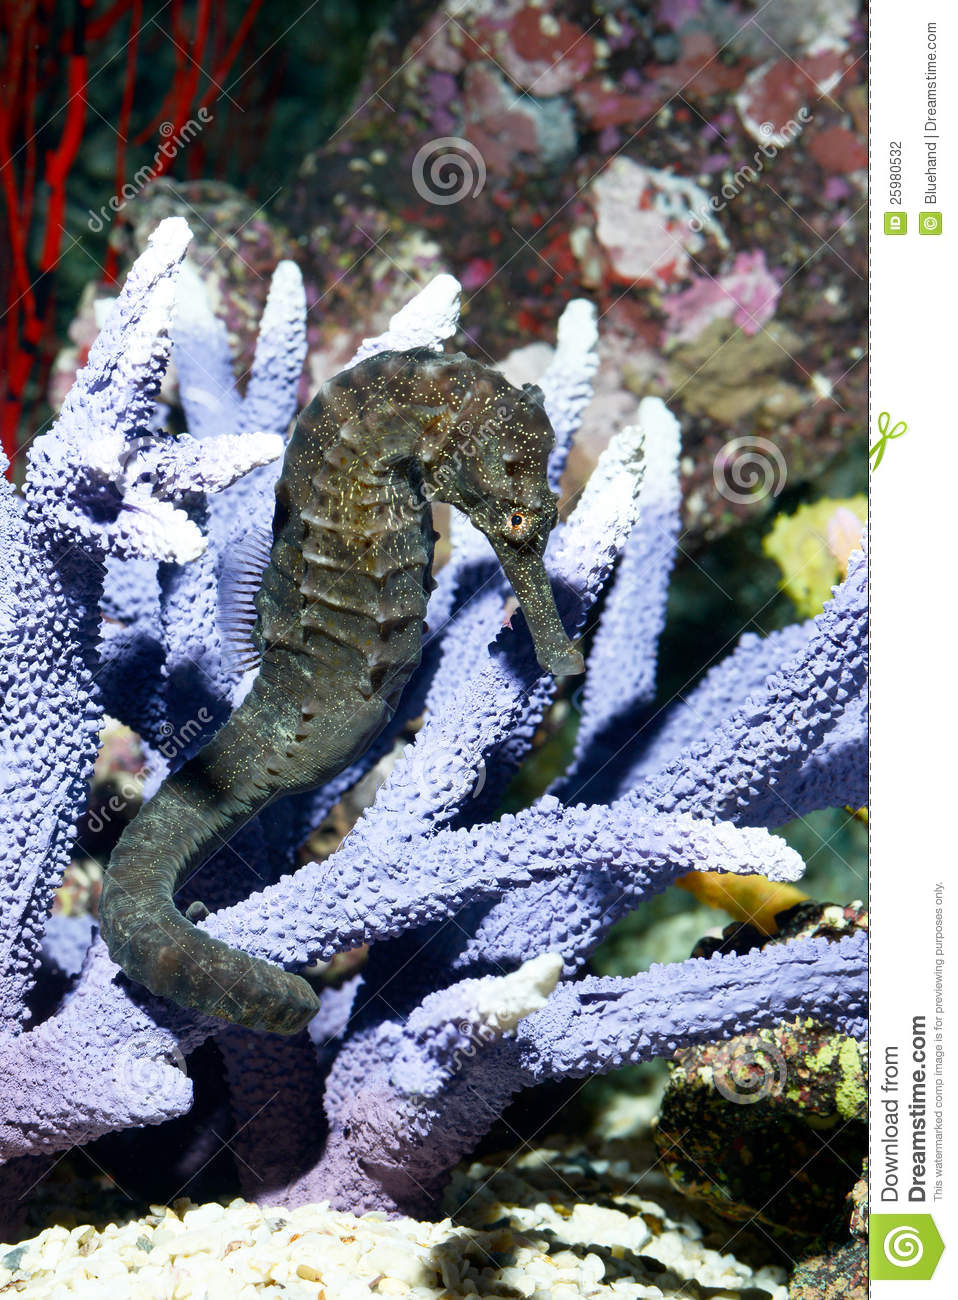 Tropical fish seahorse stock photography image 25980532 for Is a seahorse a fish